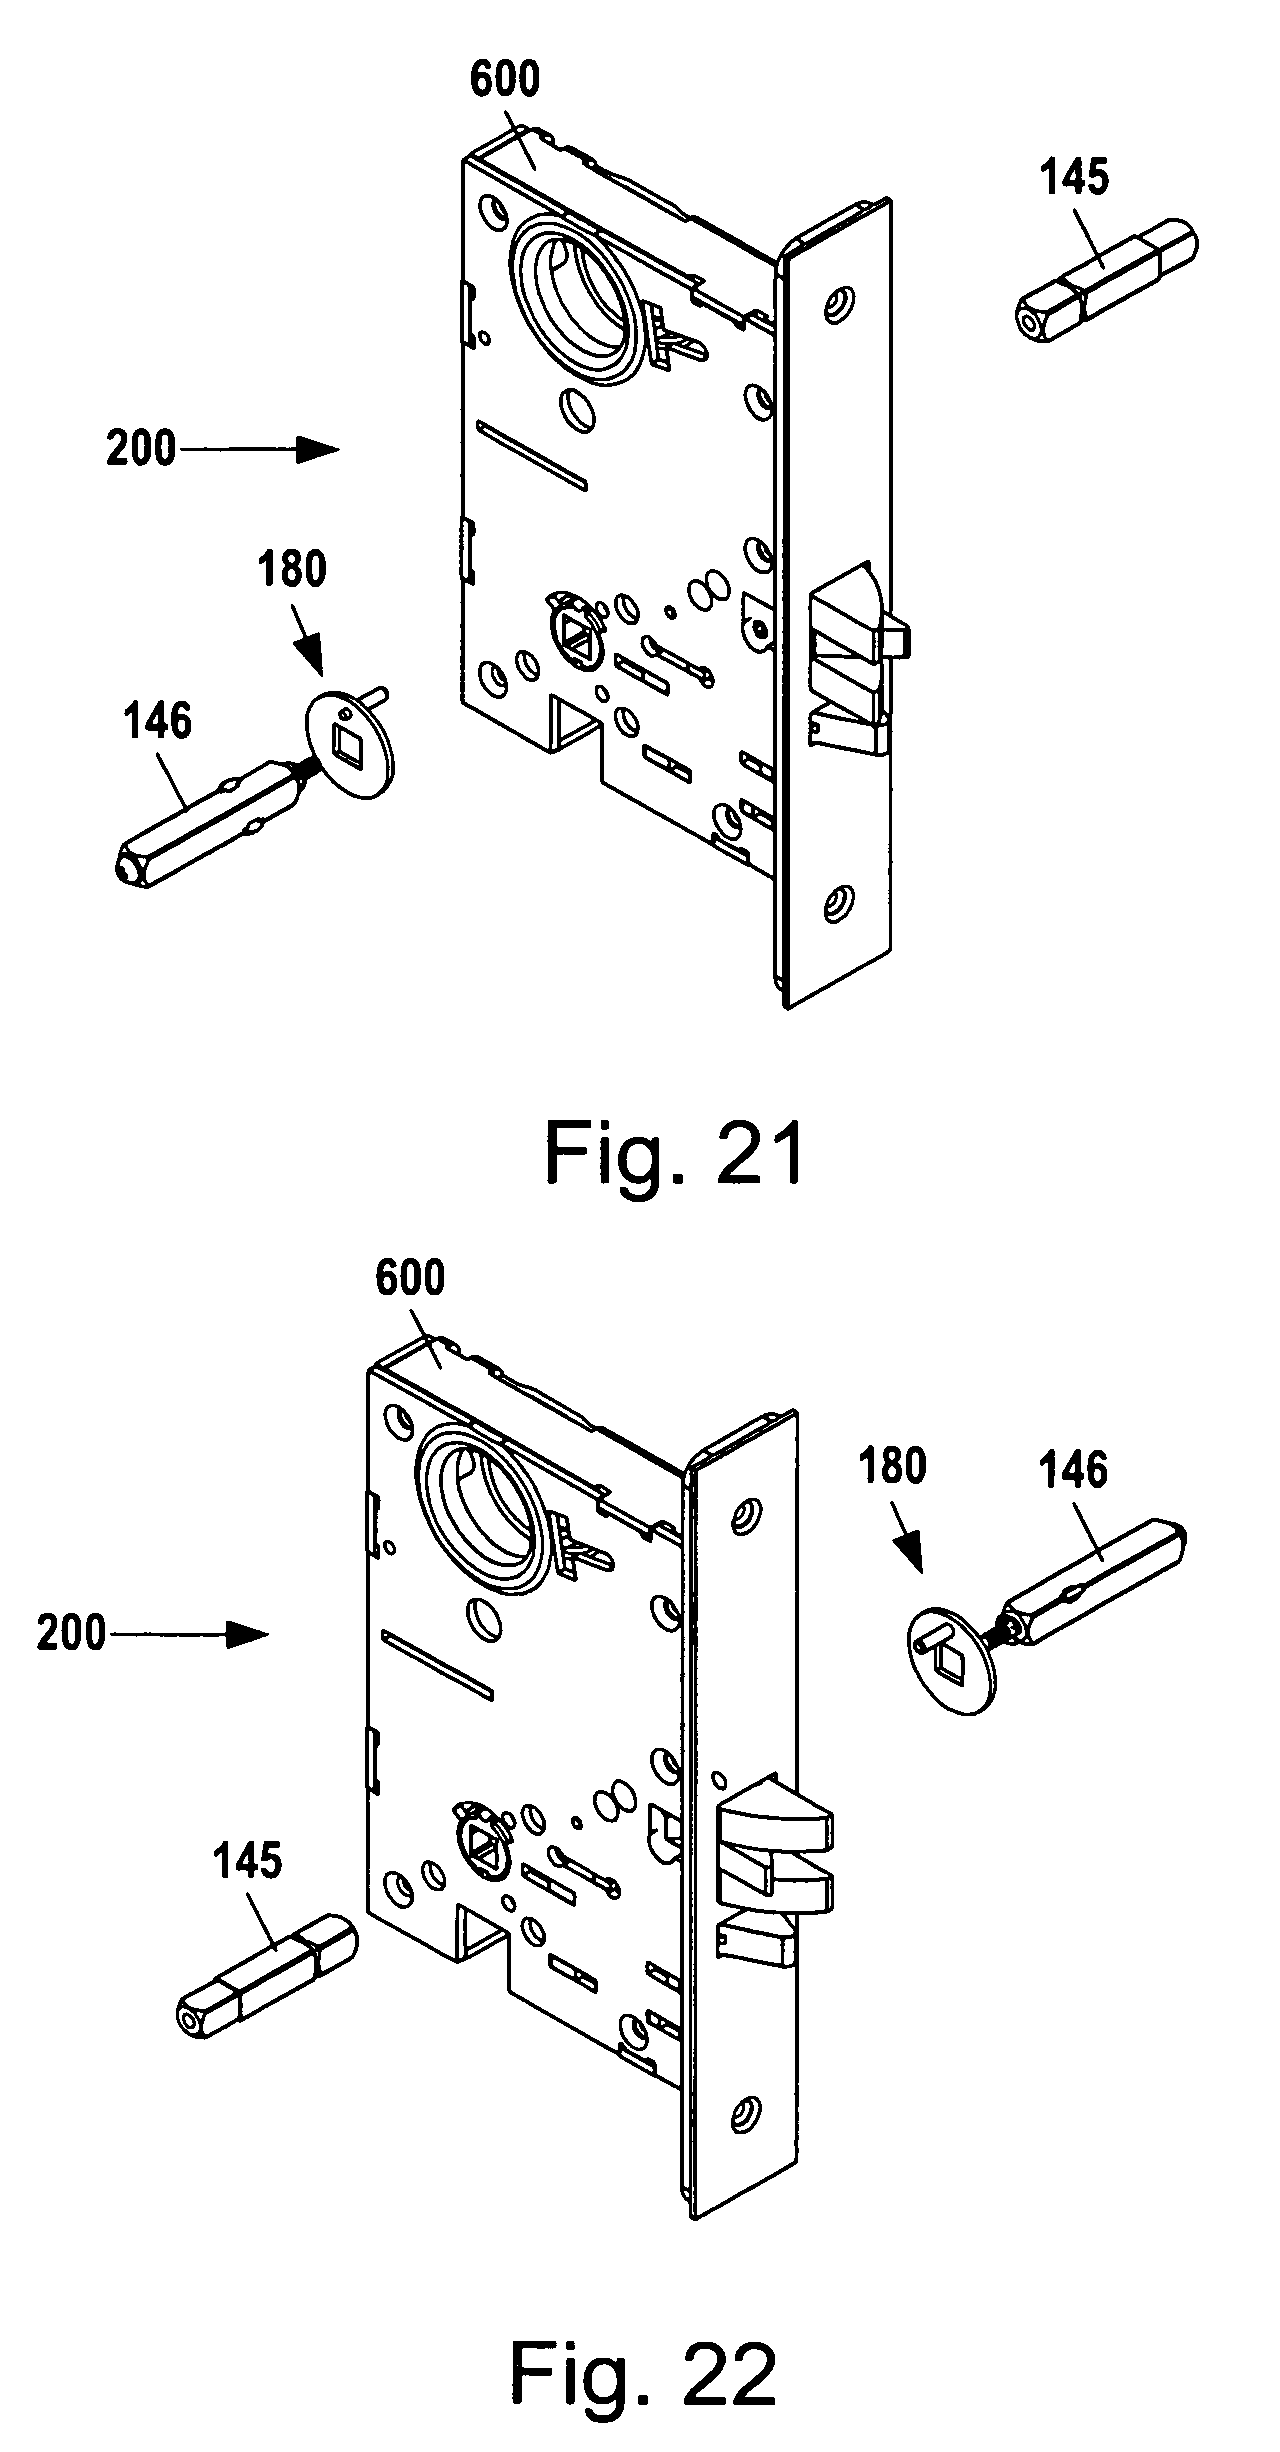 mortise lock parts diagram of rib cage and muscles patent us8292336 assembly google patents